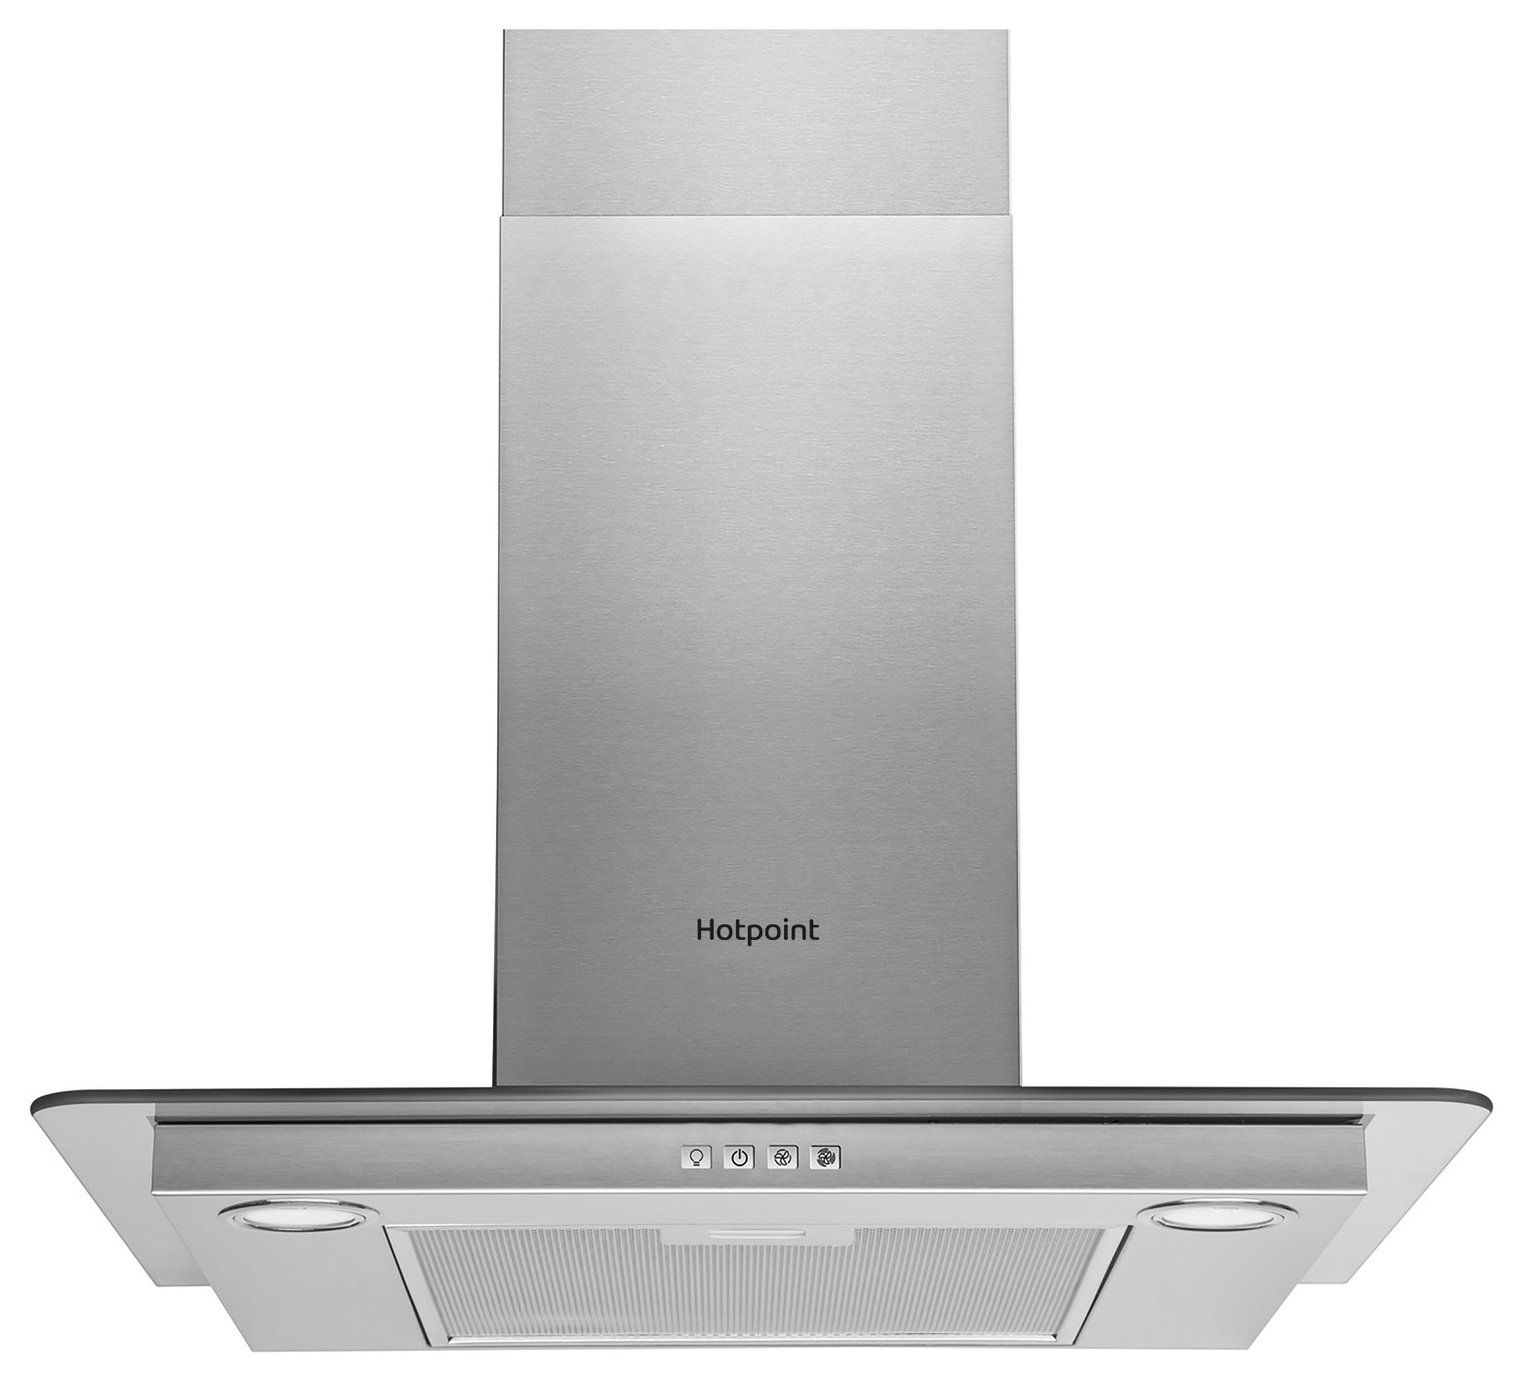 Hotpoint PHFG6.4FLMX 60cm Cooker Hood - Stainless Steel